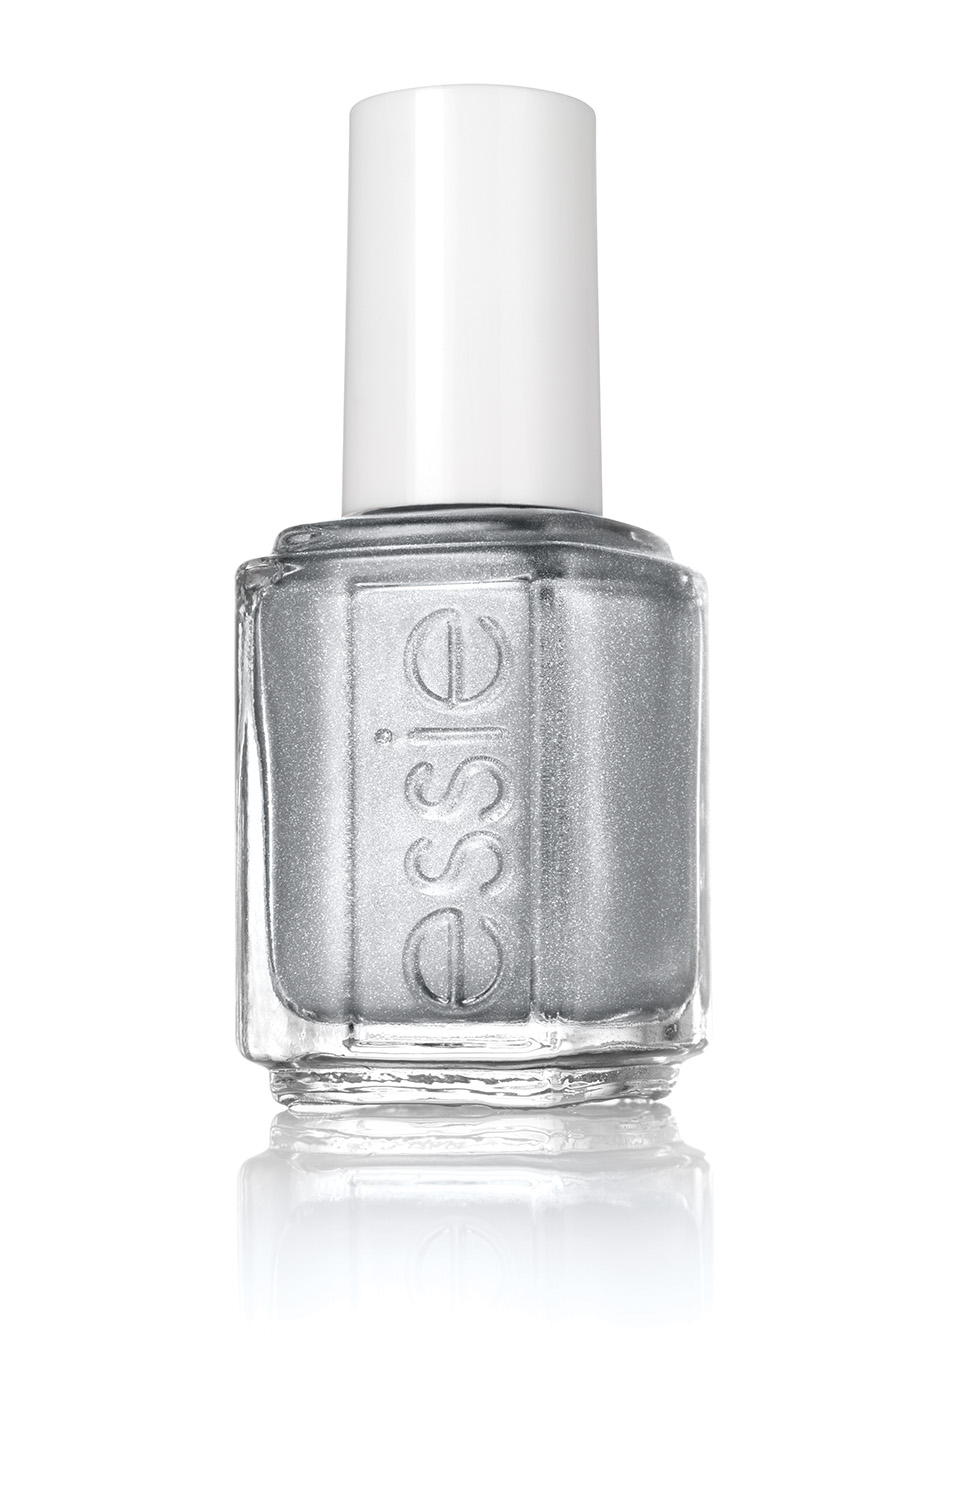 Essie 939 Apres Chic 13.5ml essie   winter collection 2015 2016   βερνίκια νυχιών